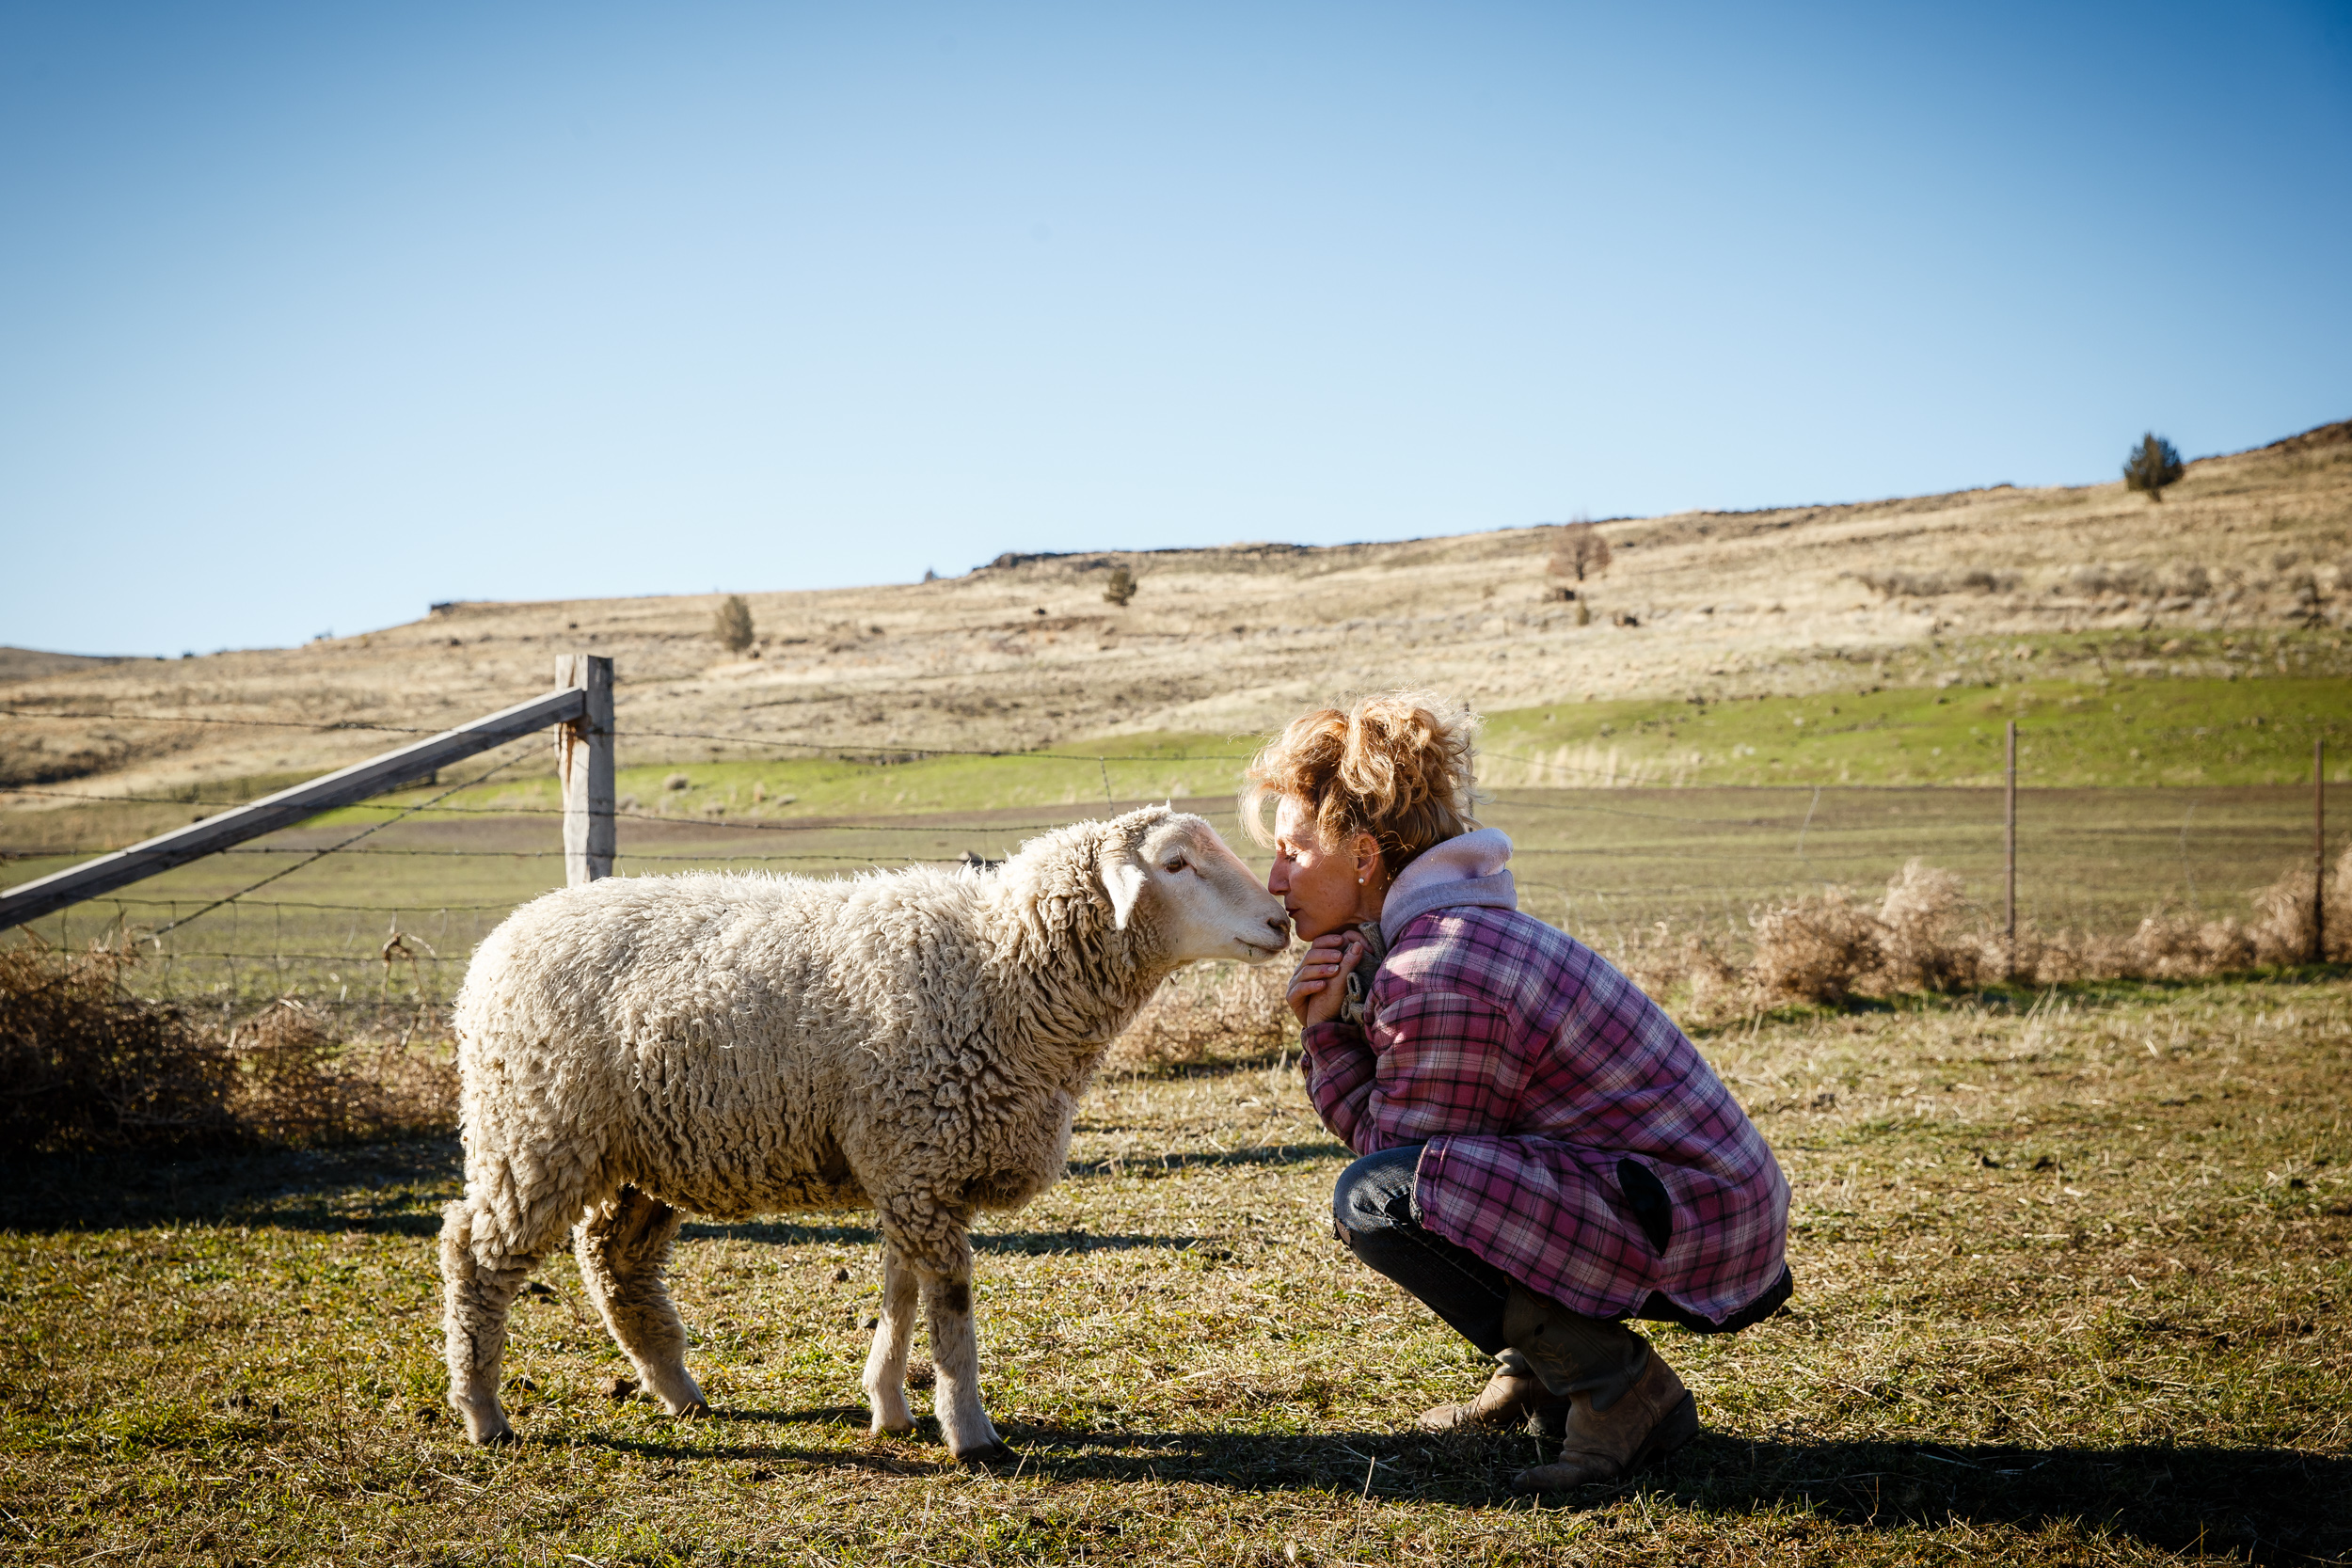 """On Monday, December 14th, 2015 in Shaniko, OR, Jeanne Carver of the 35,000-acre Imperial Stock Ranch greets some of her sheep during a tour with apparel maker Patagonia executives in rural eastern Oregon. Patagonia is looking for new supply chain partners as it recovers from an exposé of widespread animal cruelty at the company's wool supplier. Established in 1871, the Imperial Stock Ranch has been rasing sheep and cattle for 145 years and is the only ranch in Oregon designated a National Historic District that is still in operation.  Under the Carver's land mangement practices, the ranch is recognized as a model of sustainable agriculture. """"CREDIT: Leah Nash for The Wall Street Journal"""" SLUG: PATAGONIA"""